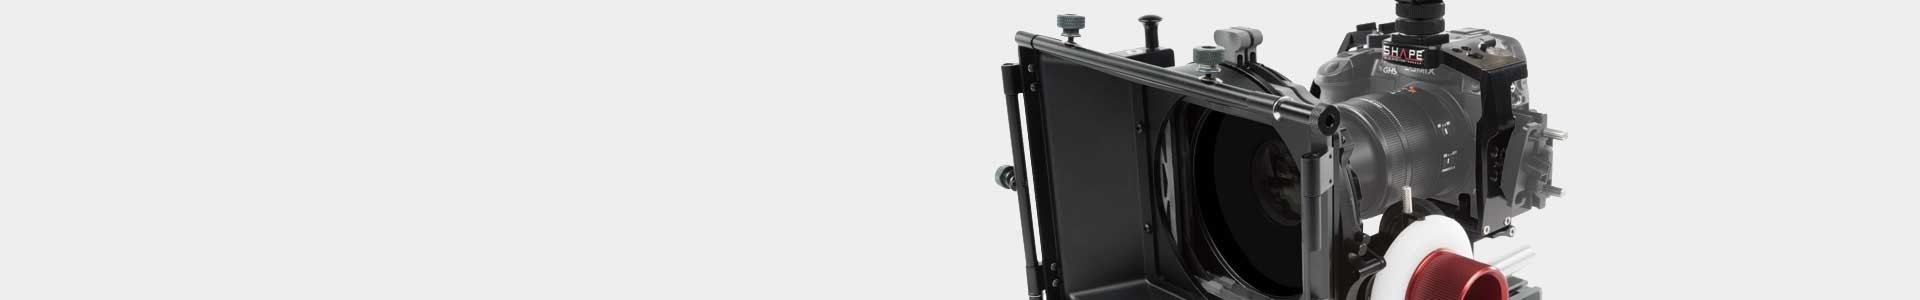 Accessories for DSLR cameras at Avacab Audiovisual